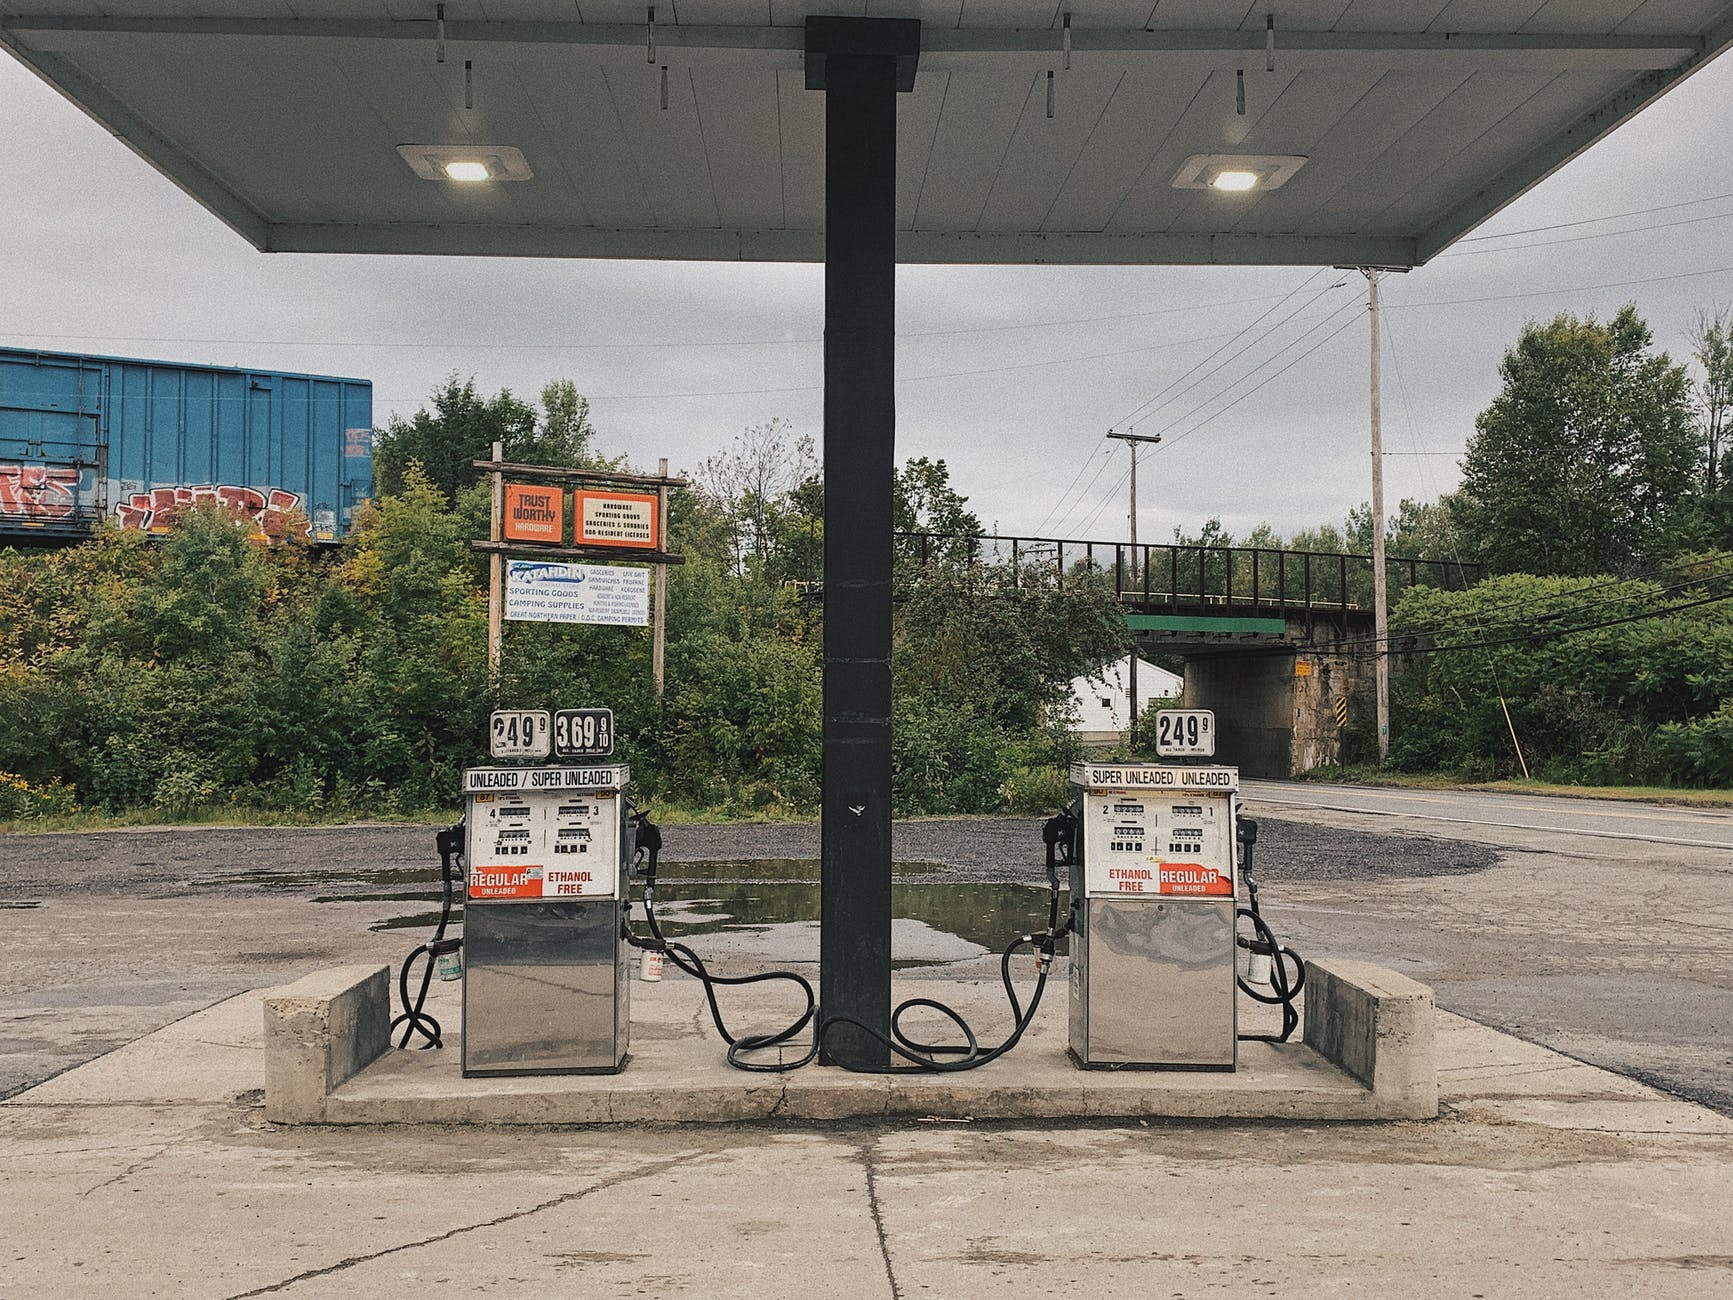 An old abandoned gas station with a railroad in the background.